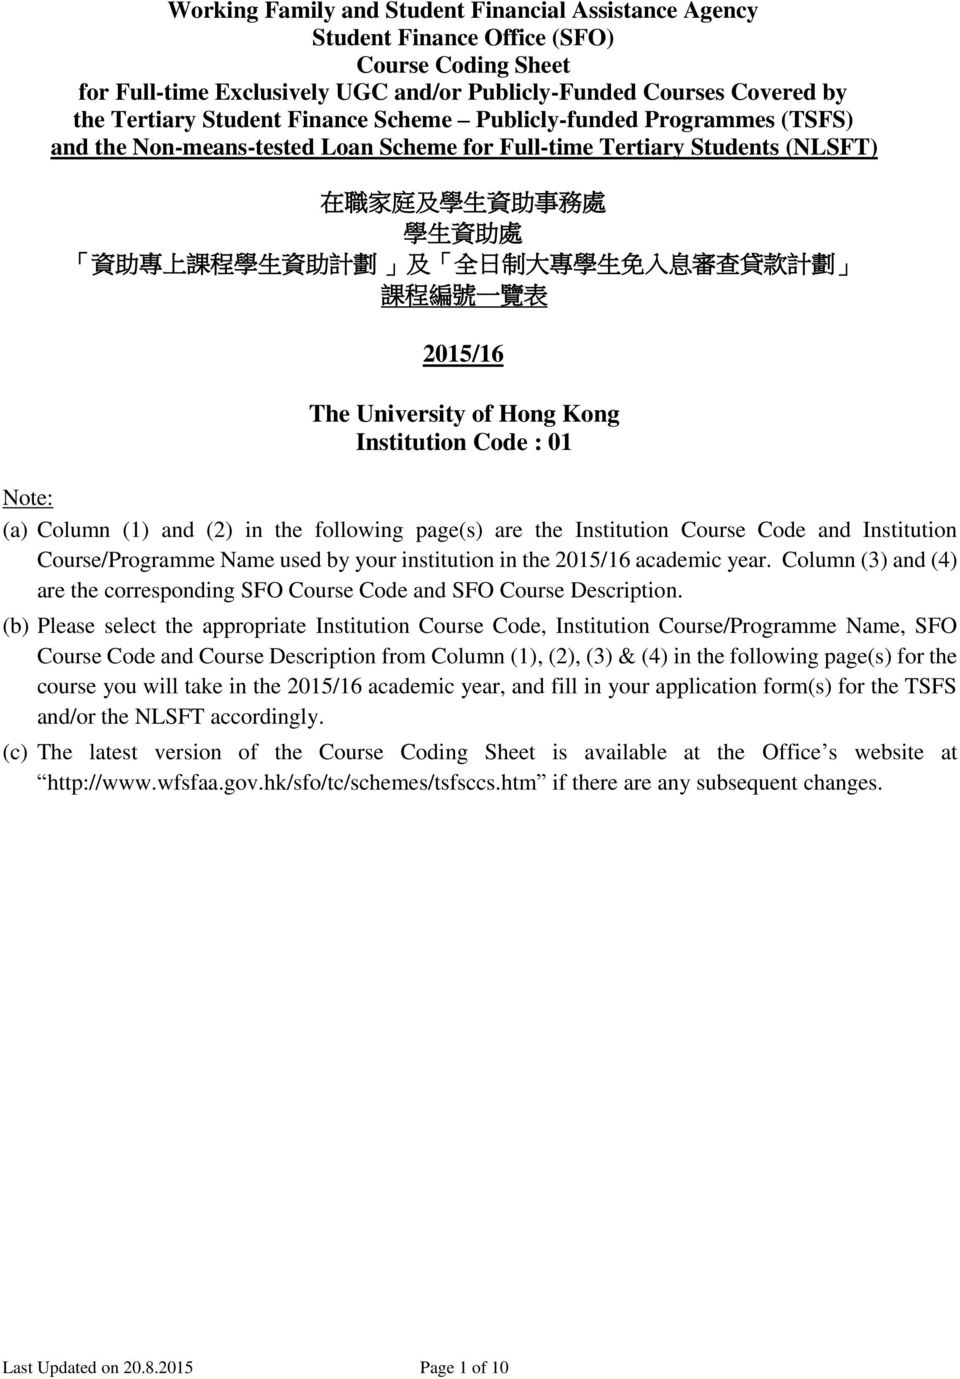 免 入 息 審 查 貸 款 計 劃 課 程 編 號 一 覽 表 2015/16 The University of Hong Kong Code : 01 Note: (a) Column (1) and (2) in the following page(s) are the and used by your institution in the 2015/16 academic year.